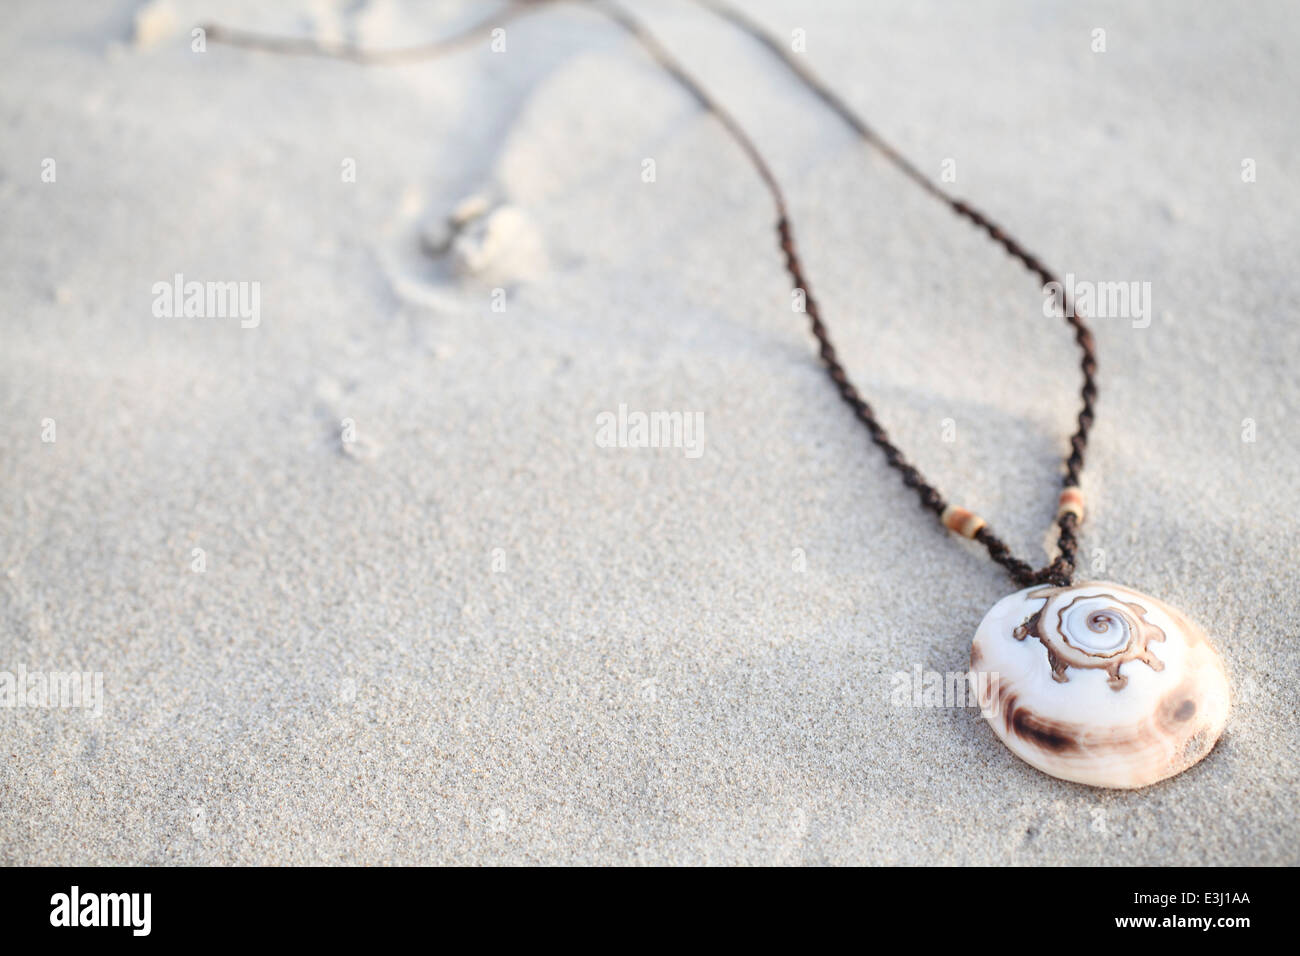 Seashell necklace on the sand - Stock Image